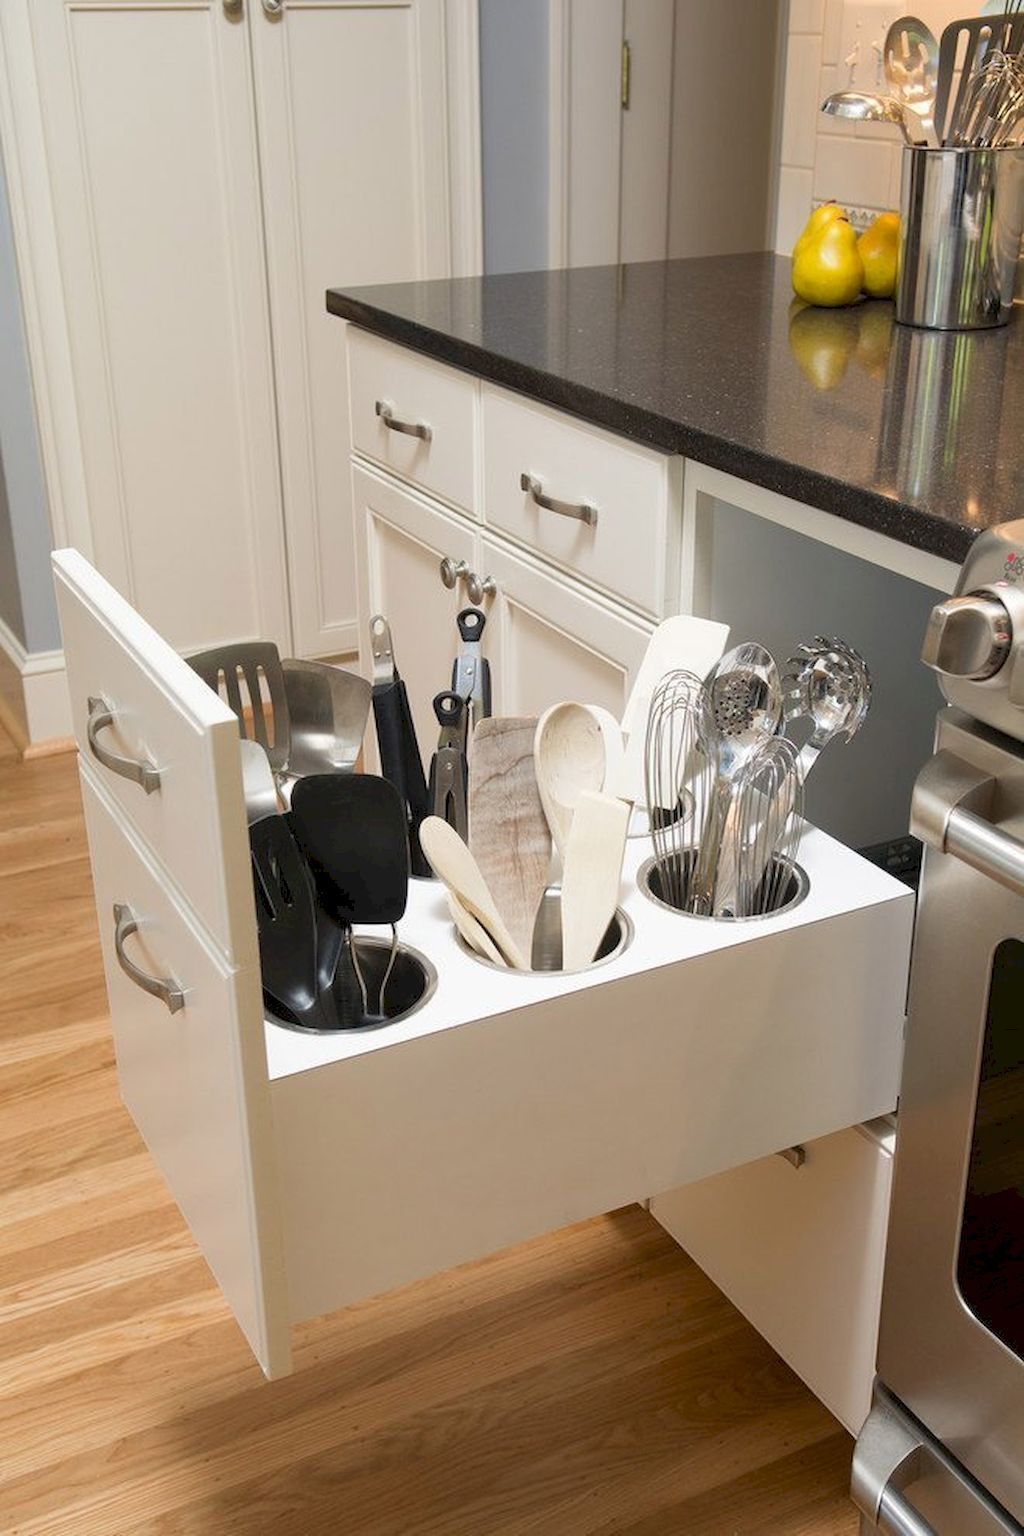 40 Space Saving Storage and Oragnization for Small Kitchens Ideas Remodel #kitchenremodelsmall